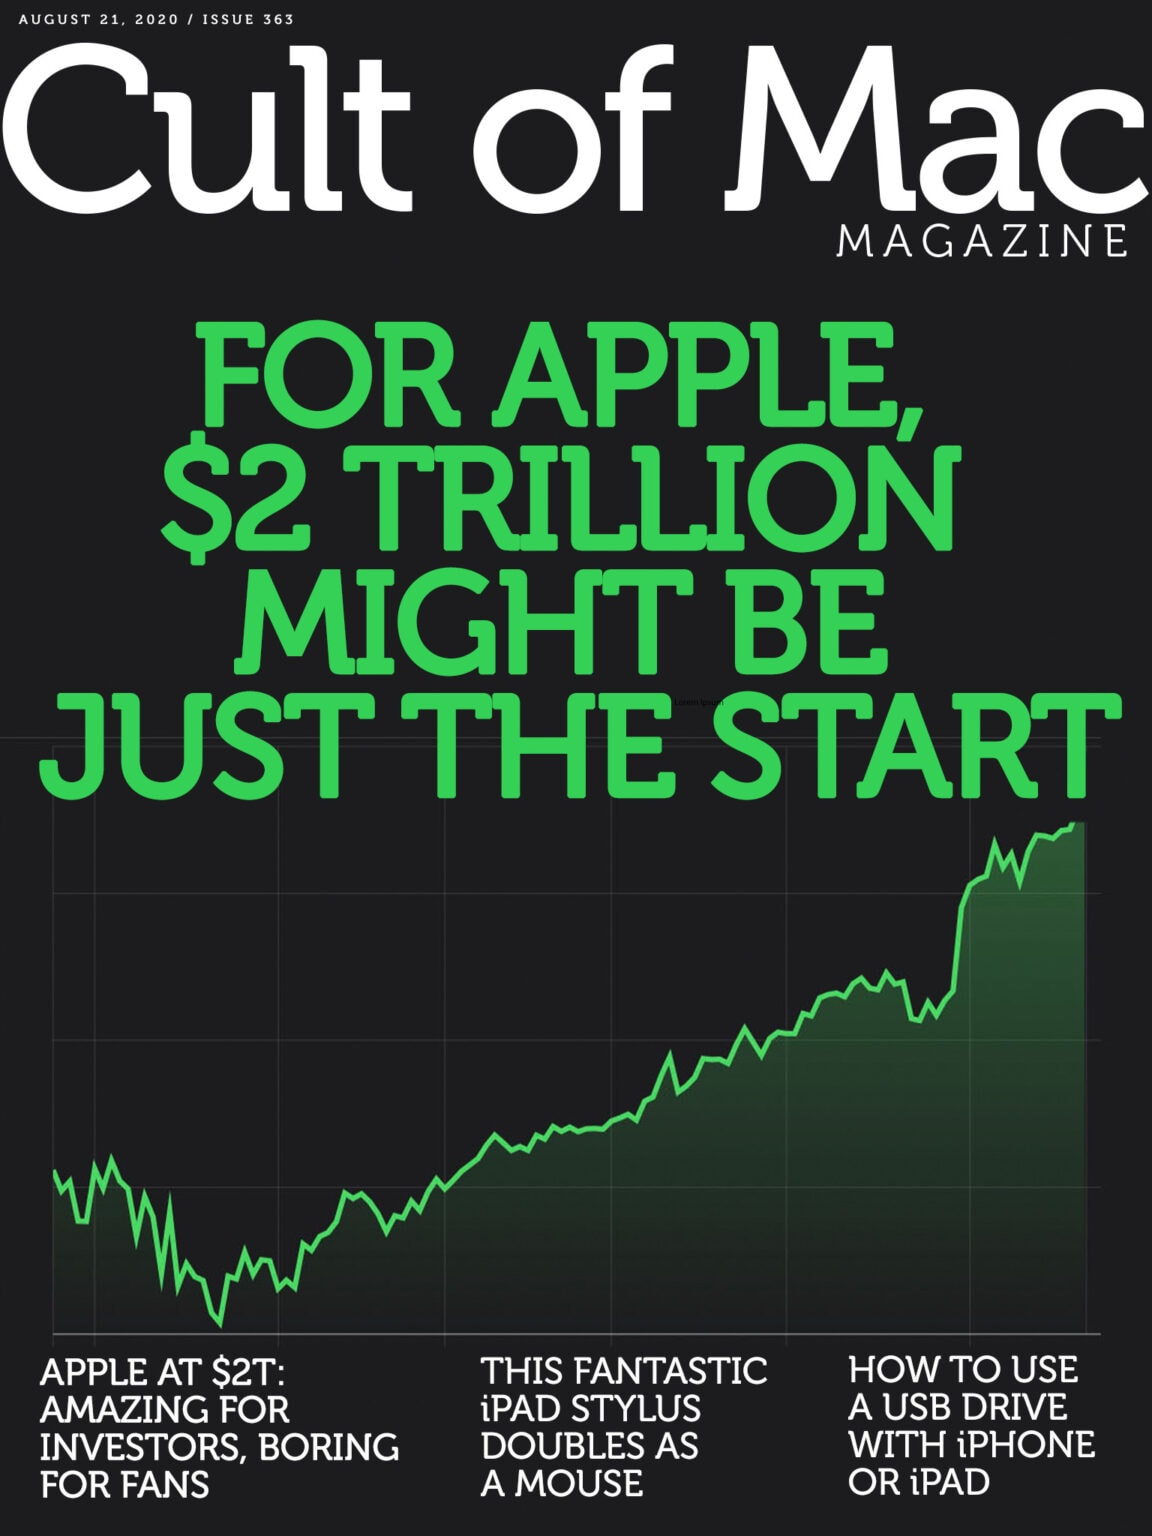 Apple hits $2 trillion market cap and doesn't look back.